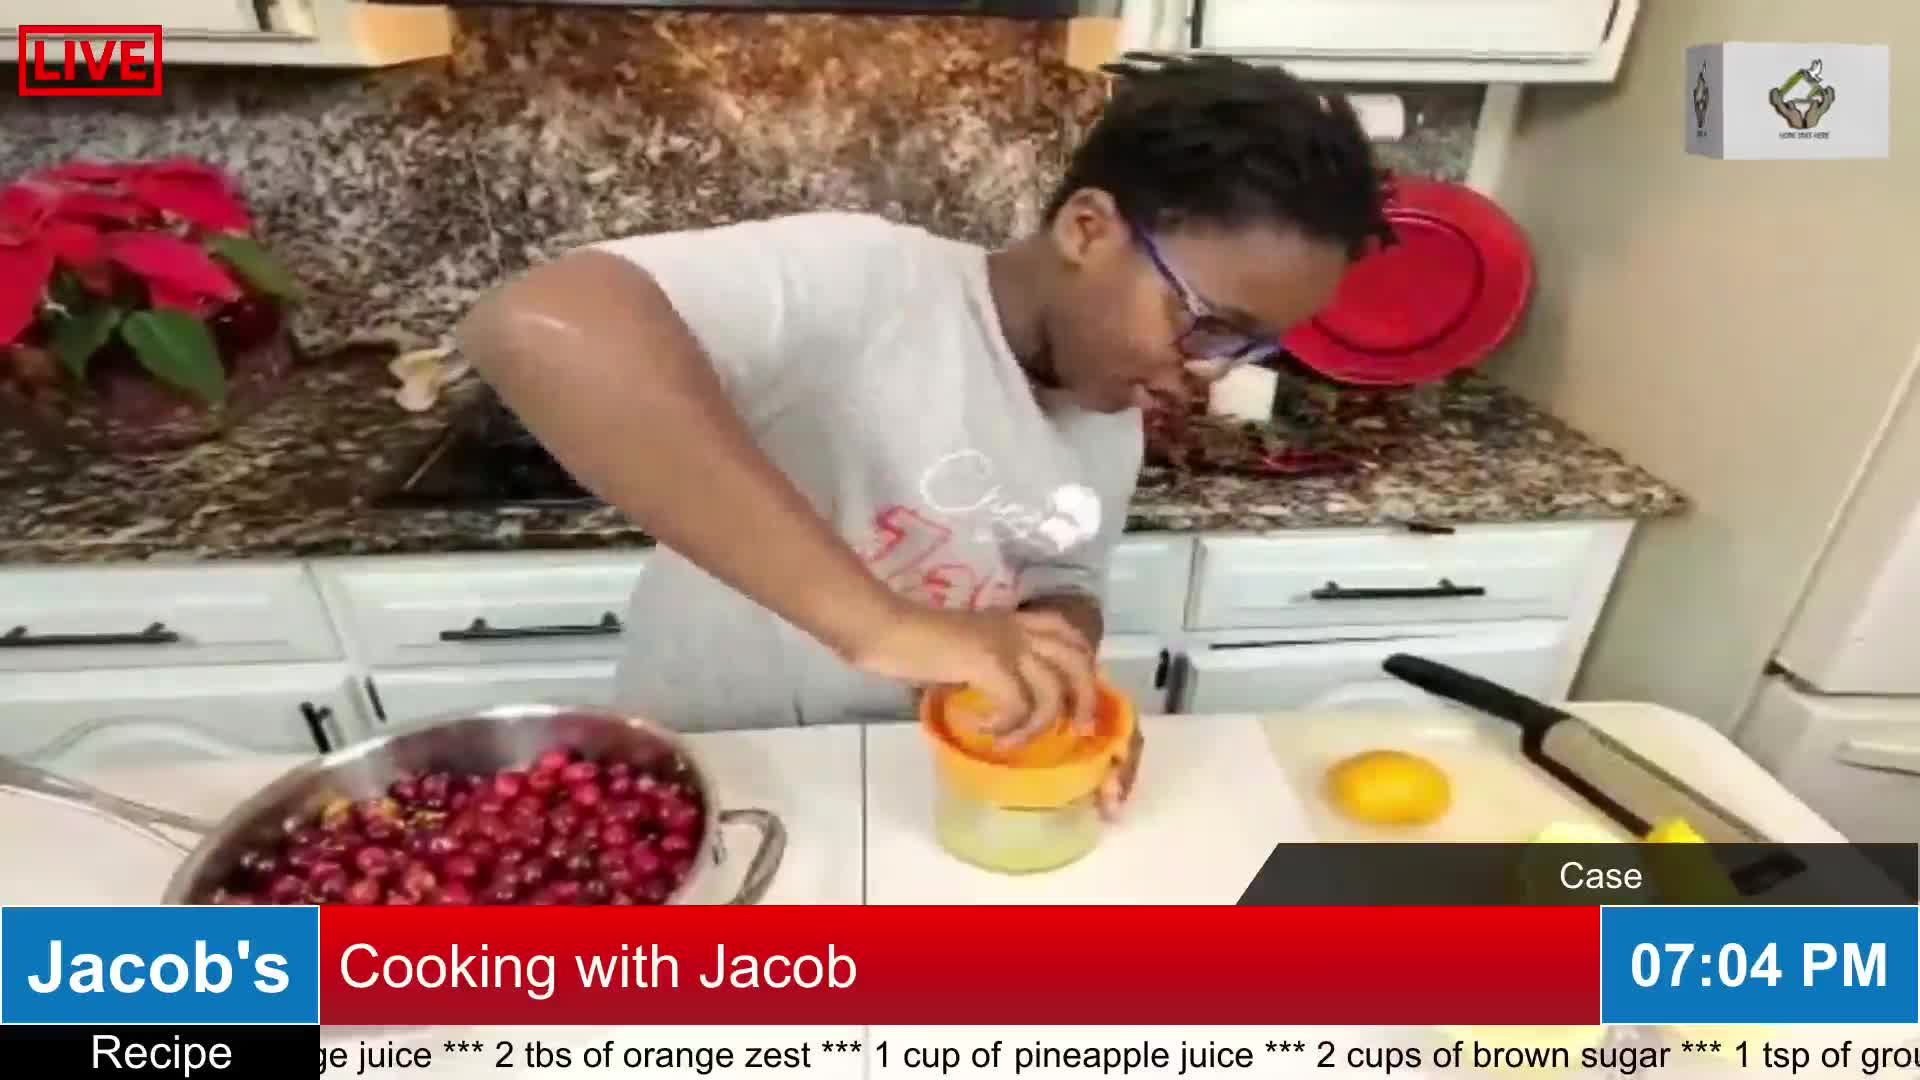 Cooking with Jacob